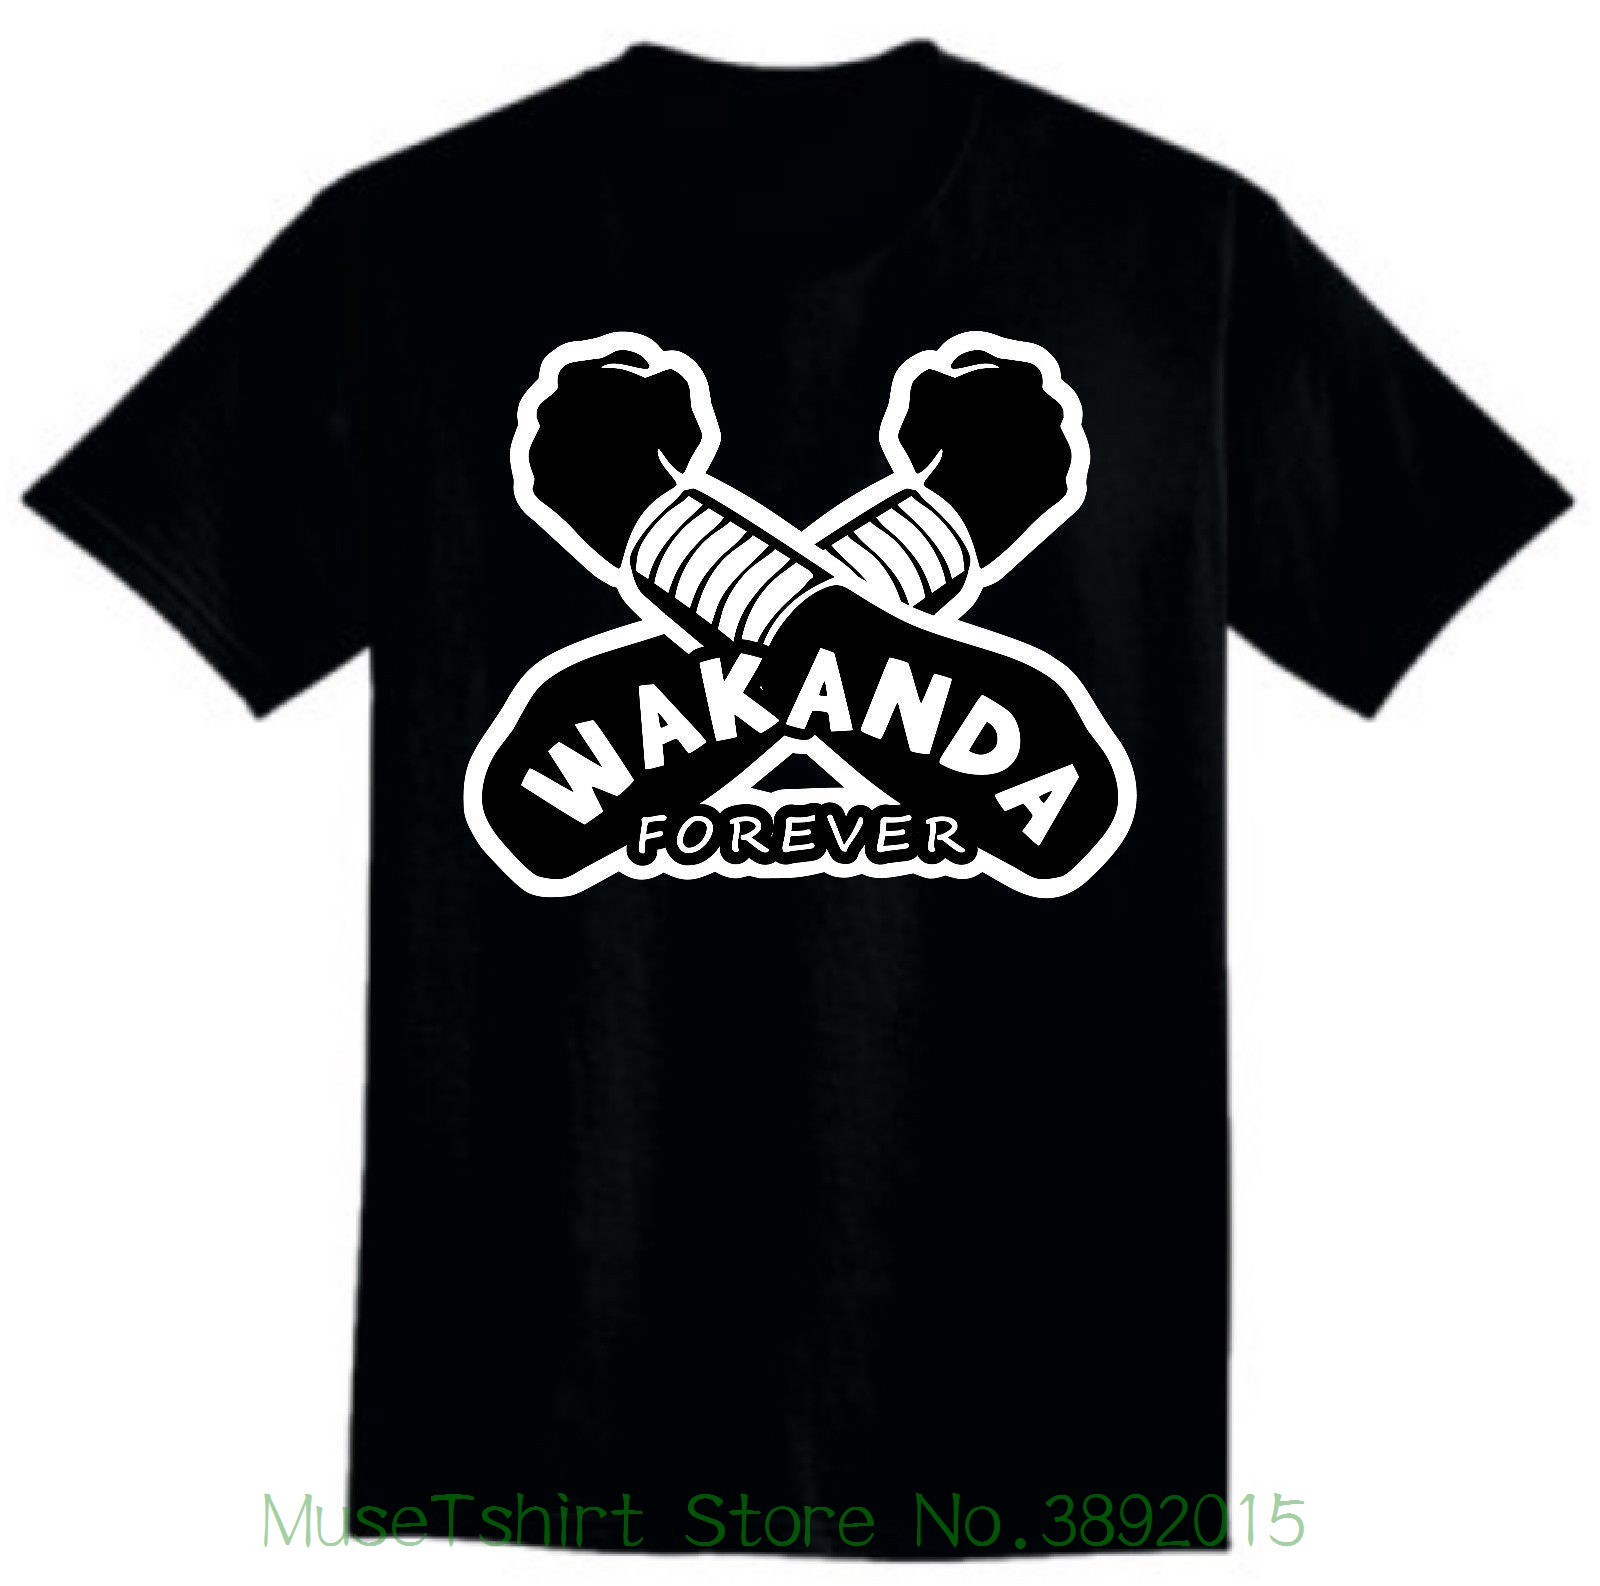 Straight Outta Wakanda T-shirt Wakanda , Black Panther Shirt Men Women Kid Shirt Men New High Quality